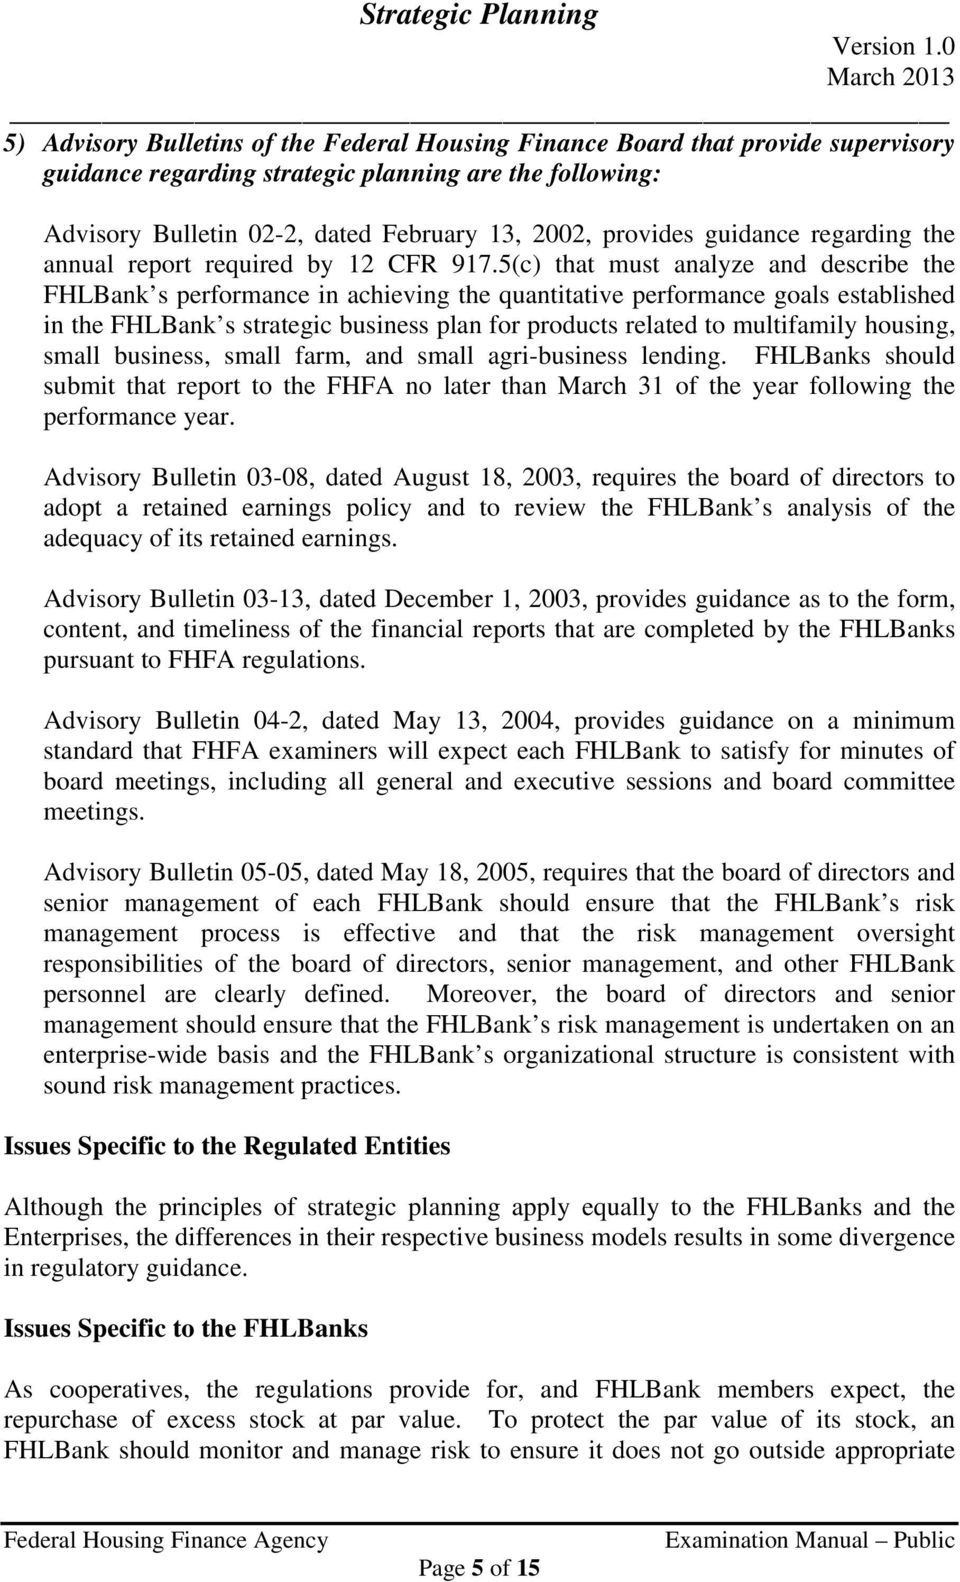 5(c) that must analyze and describe the FHLBank s performance in achieving the quantitative performance goals established in the FHLBank s strategic business plan for products related to multifamily